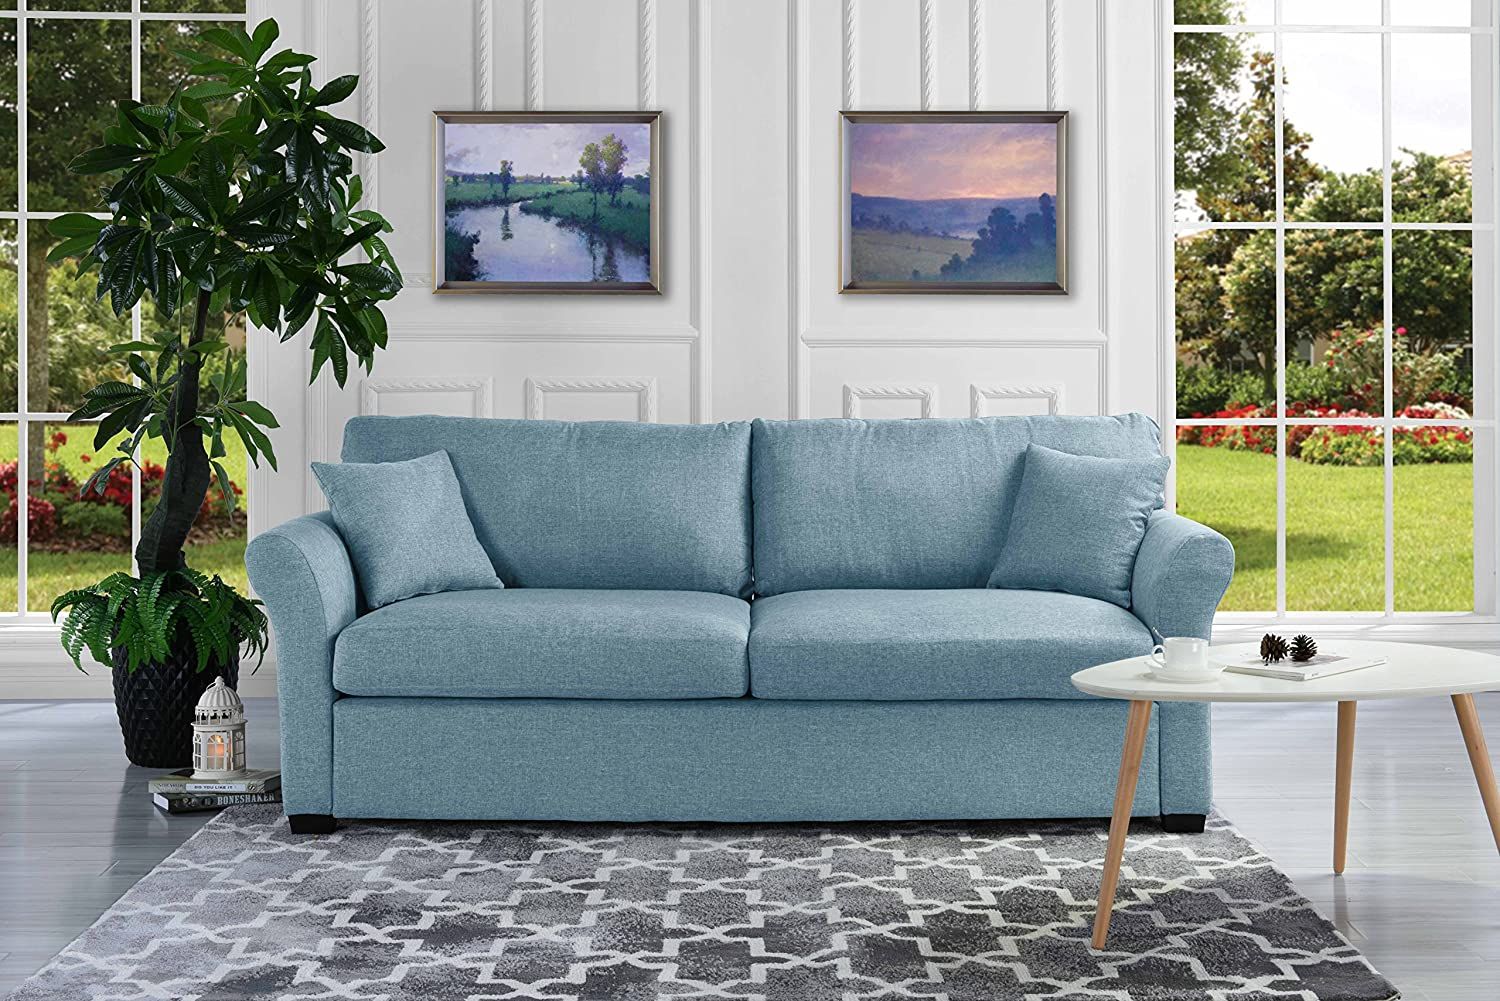 . Classic and Traditional Ultra Comfortable Linen Fabric Sofa   Living Room  Fabric Couch  Sky Blue